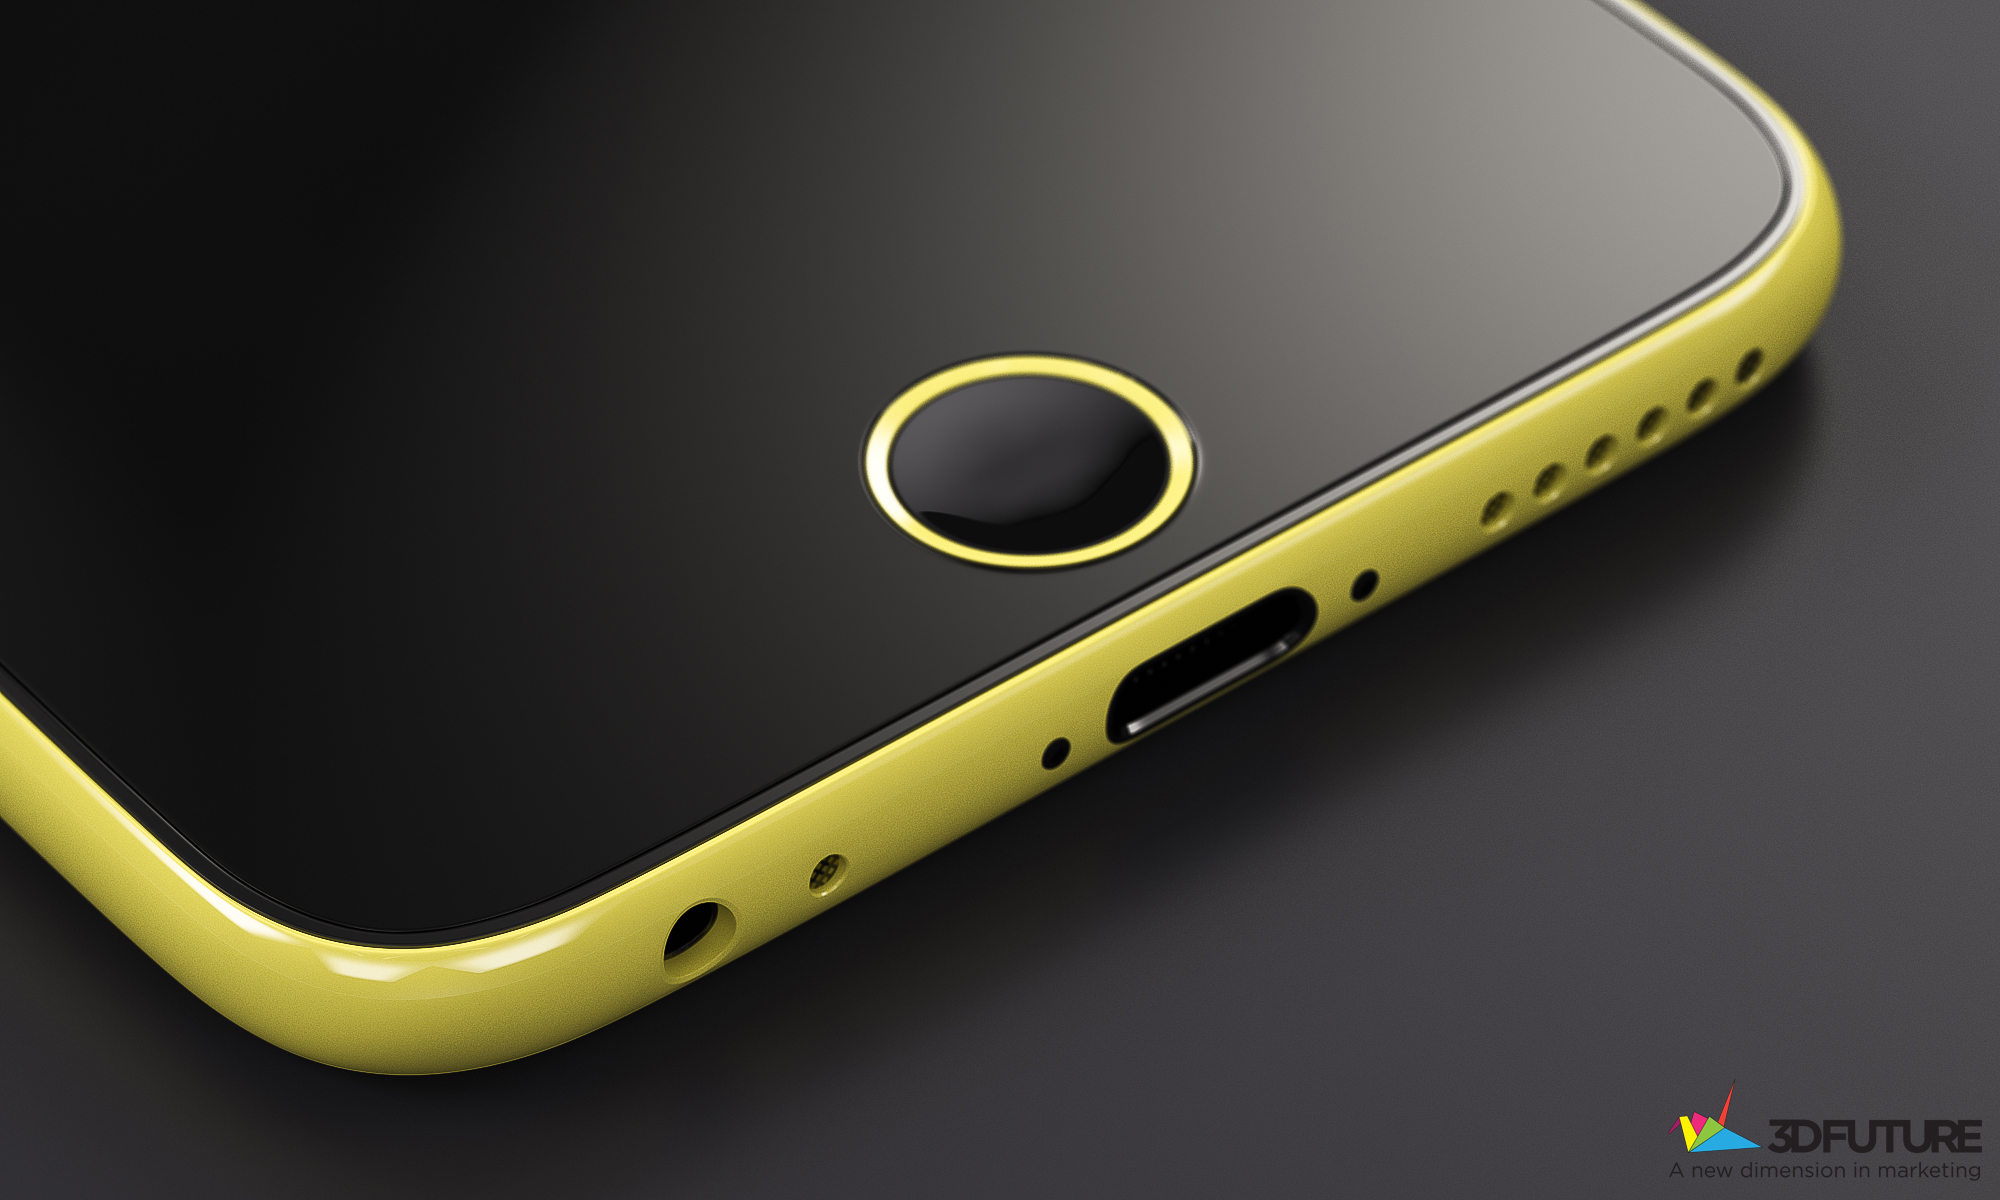 iPhone-6c-concept-3D-Future-004.jpg